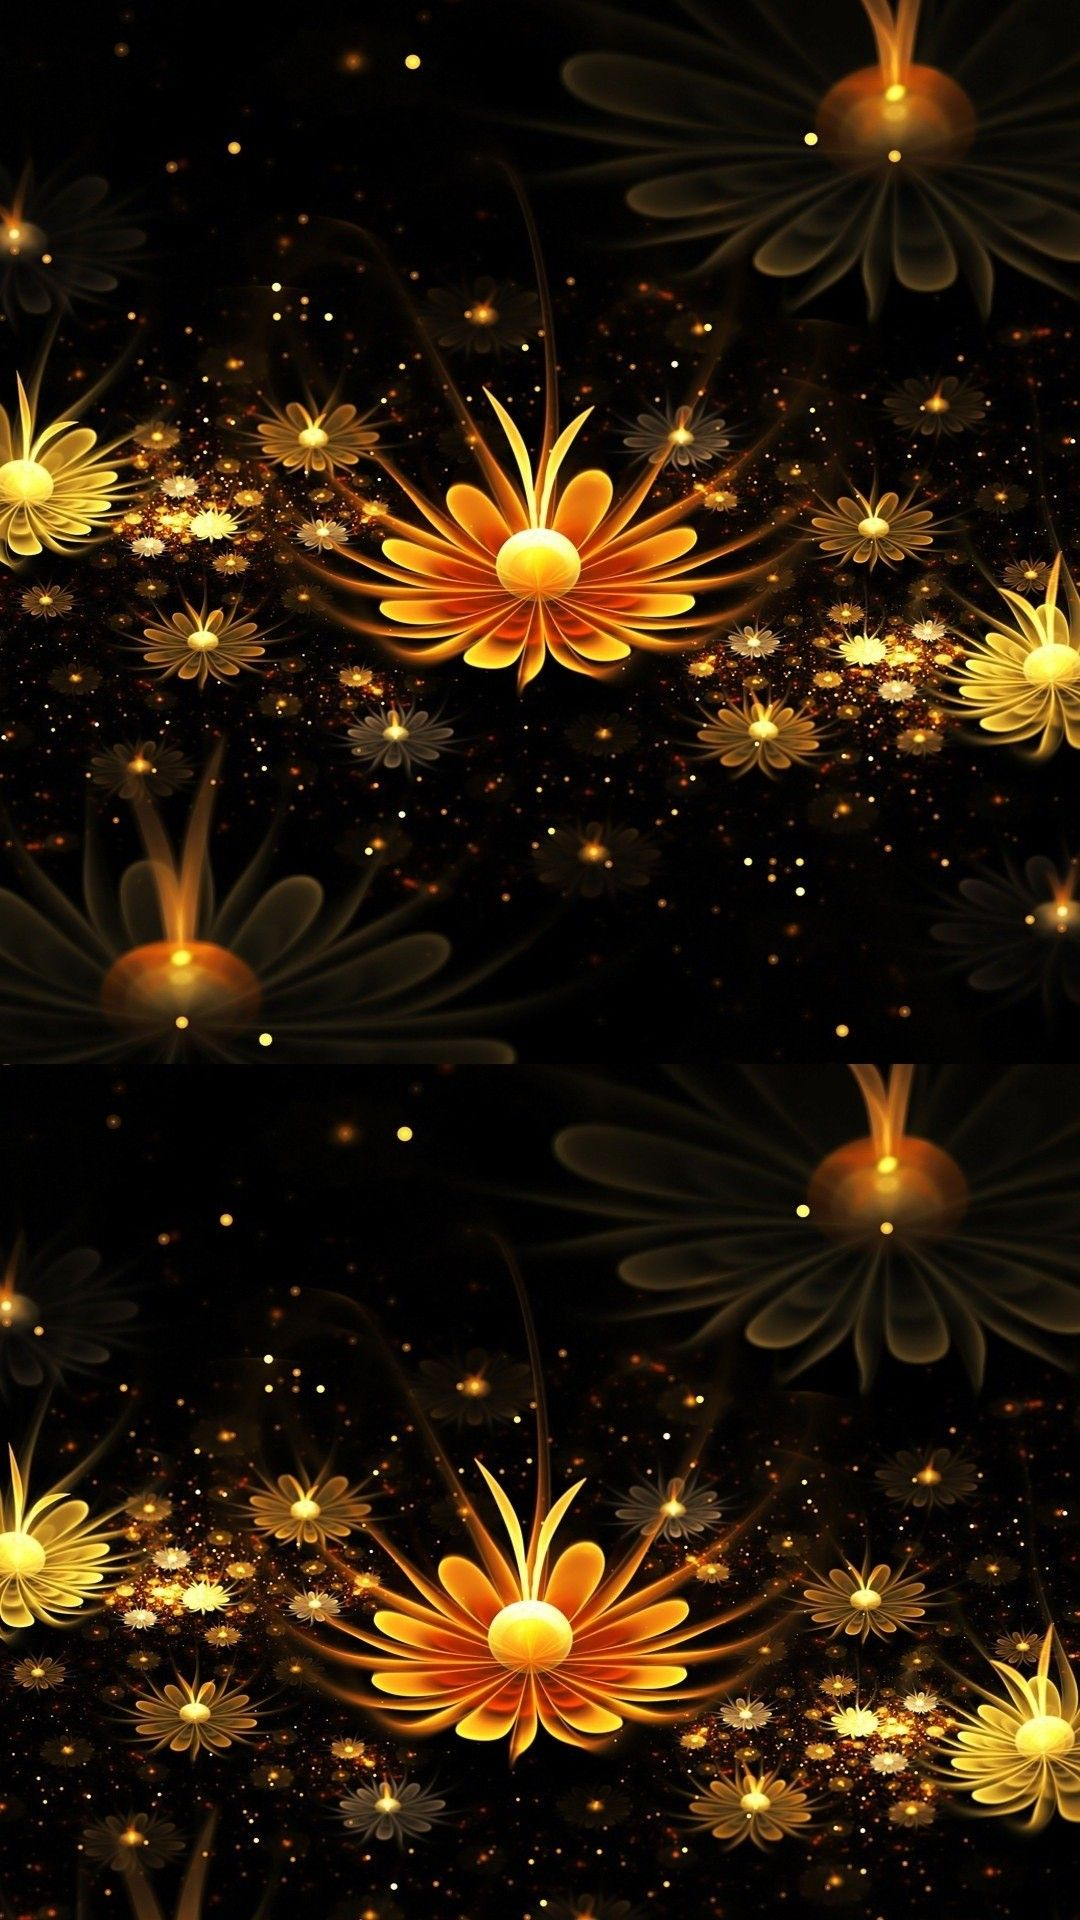 3D Flower Wallpaper For Mobile Android Best HD